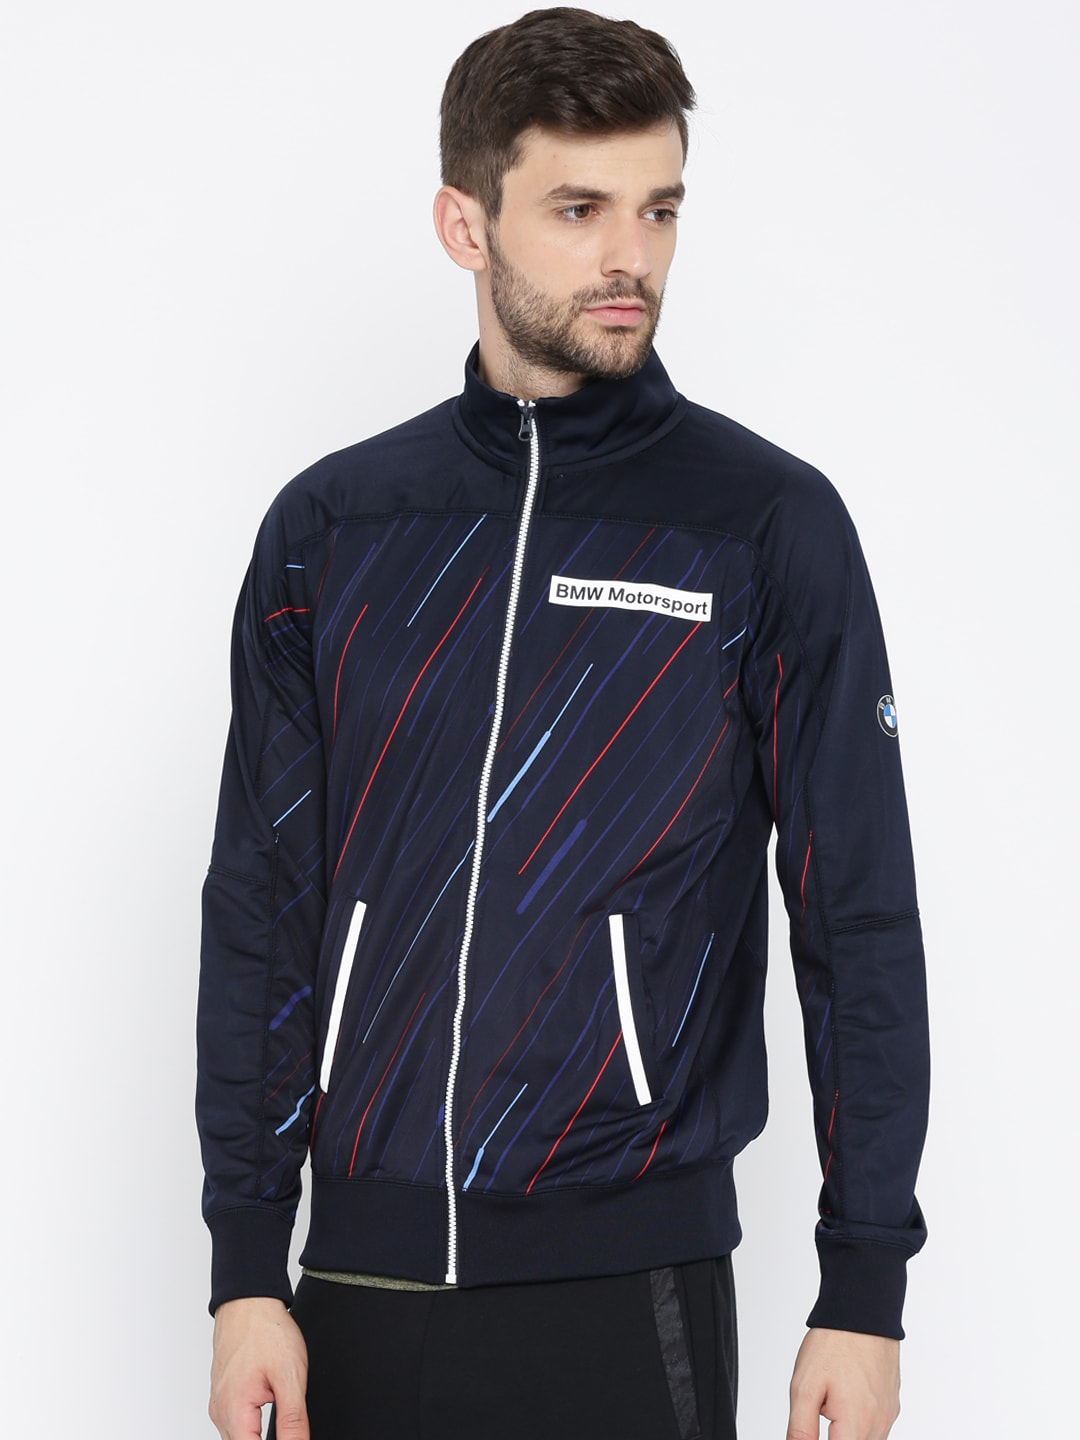 cb1eaf4edcd Puma Bmw Jackets - Buy Puma Bmw Jackets online in India